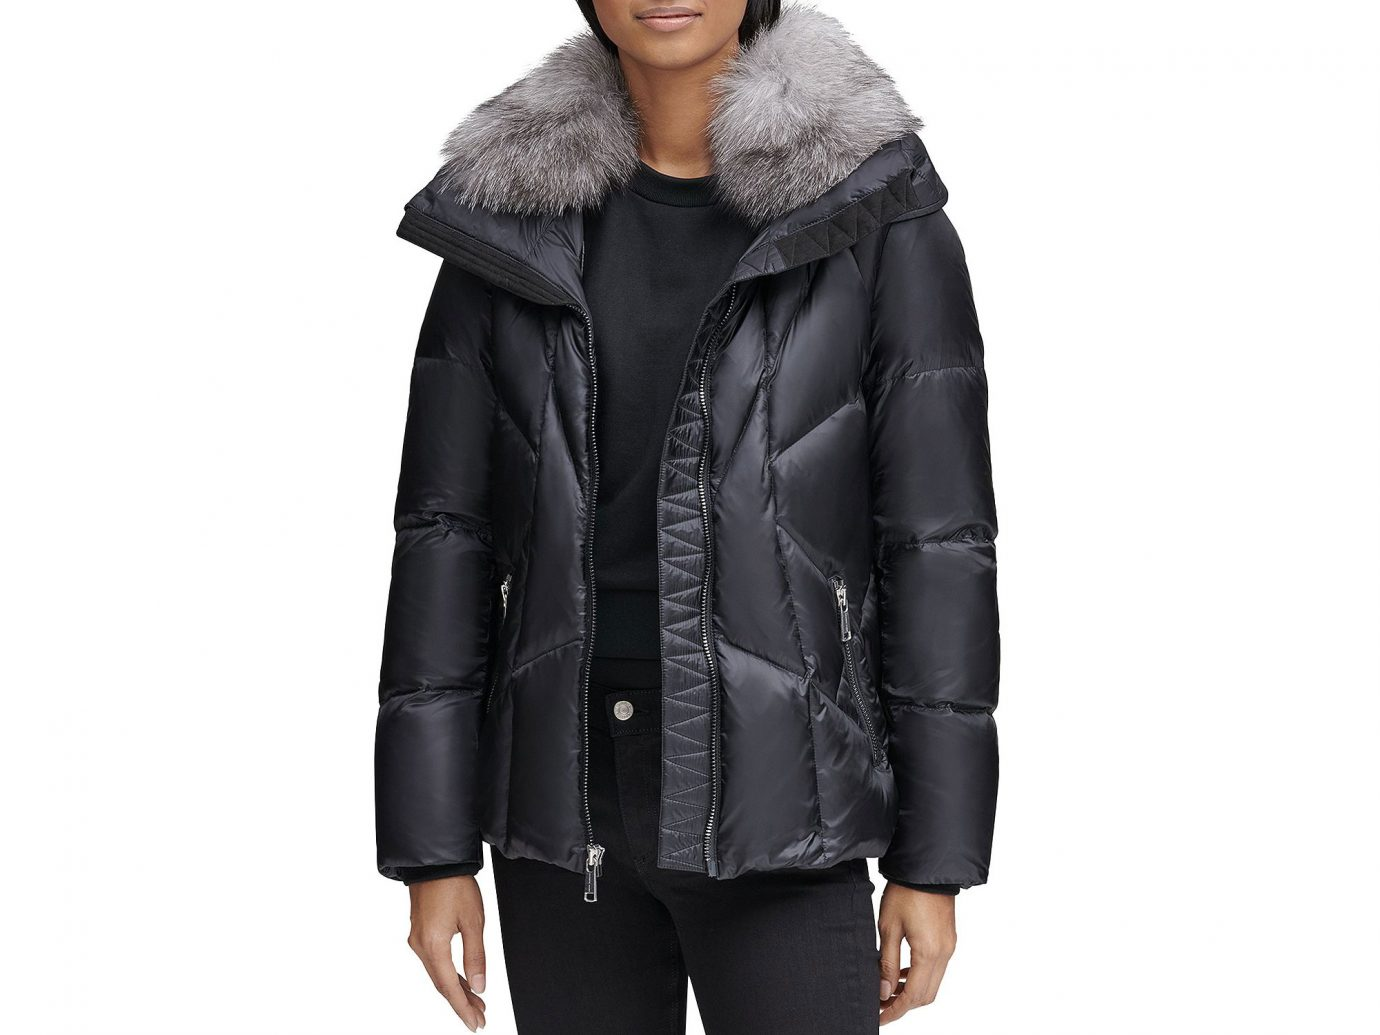 Andrew Marc Naya Fox Fur Trim Short Puffer Coat